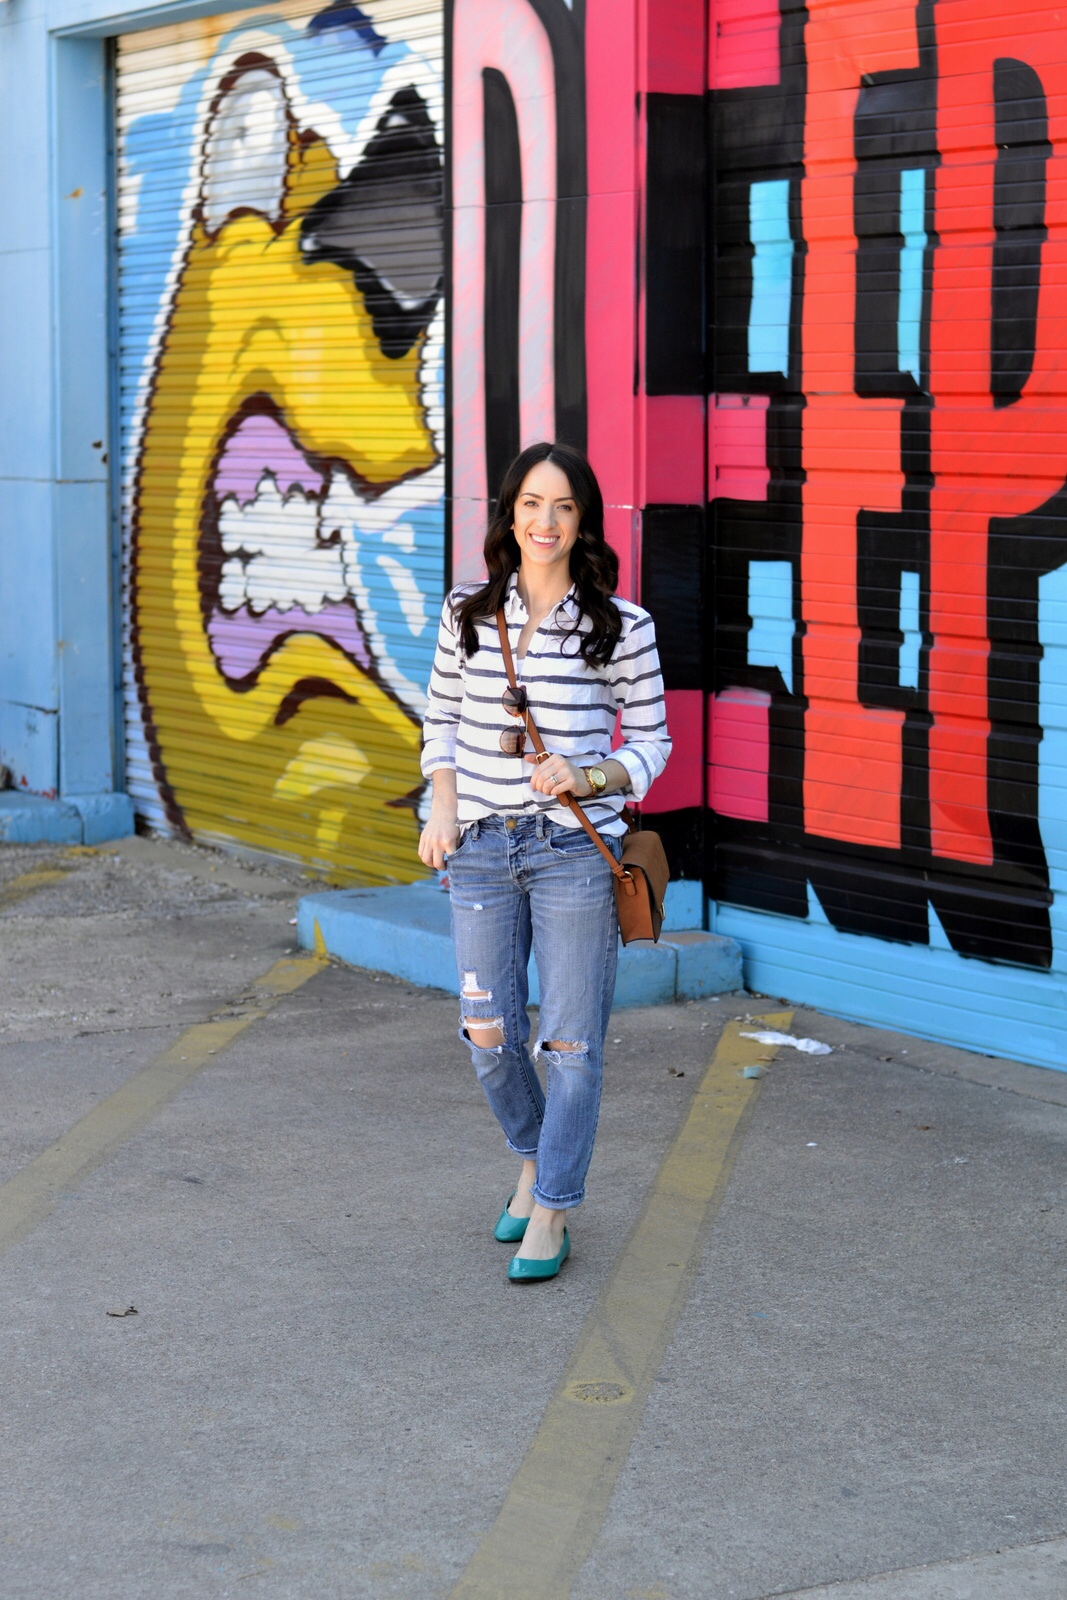 Colorful flats, boyfriend jeans and top for casual Spring outfit